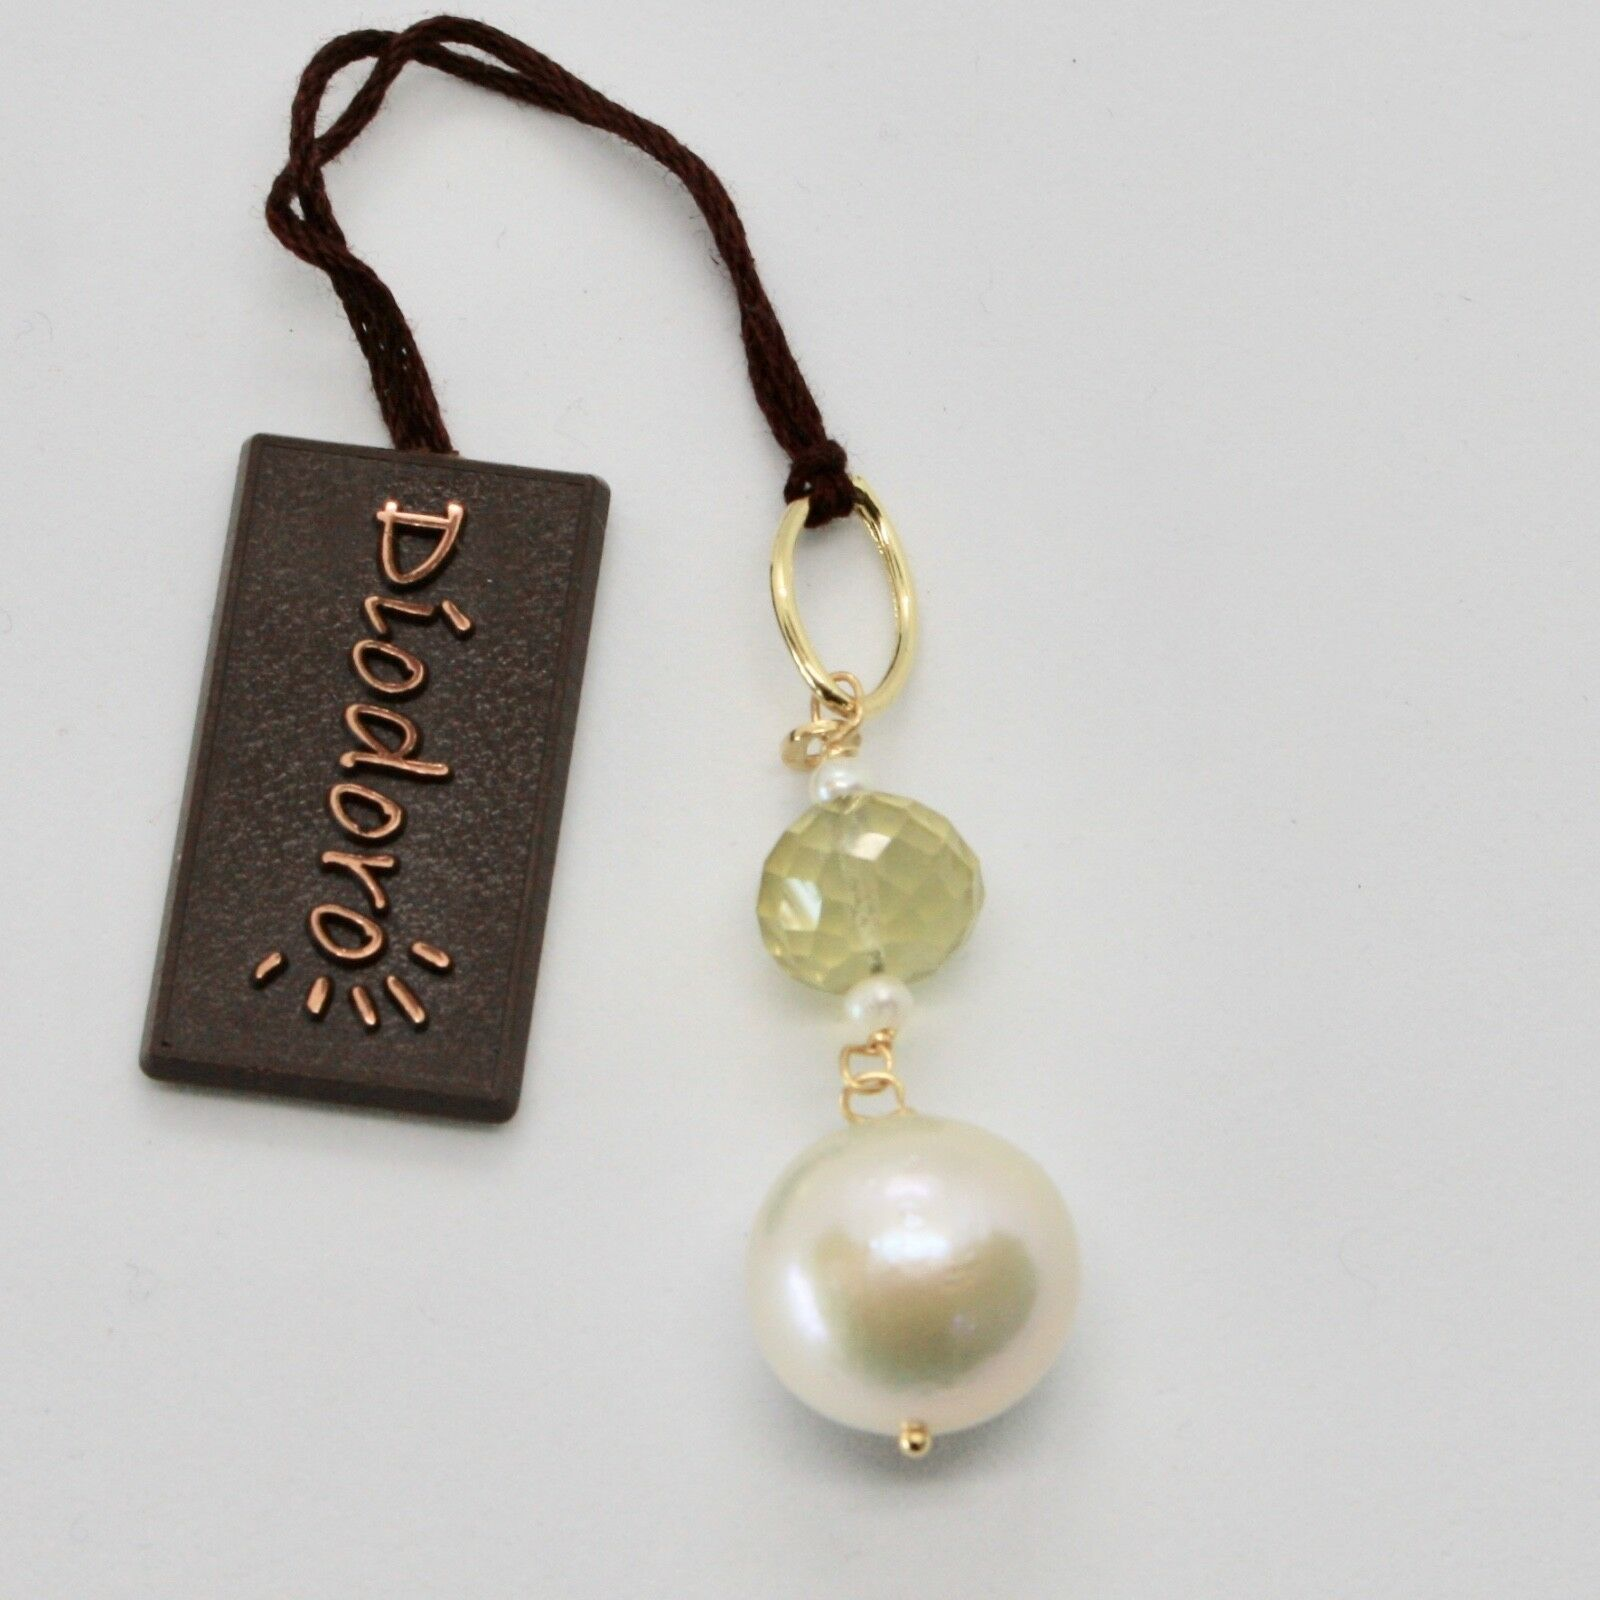 Pendant Yellow Gold 18k 750 with Pearl White Freshwater Pearls & Quartz Lemon